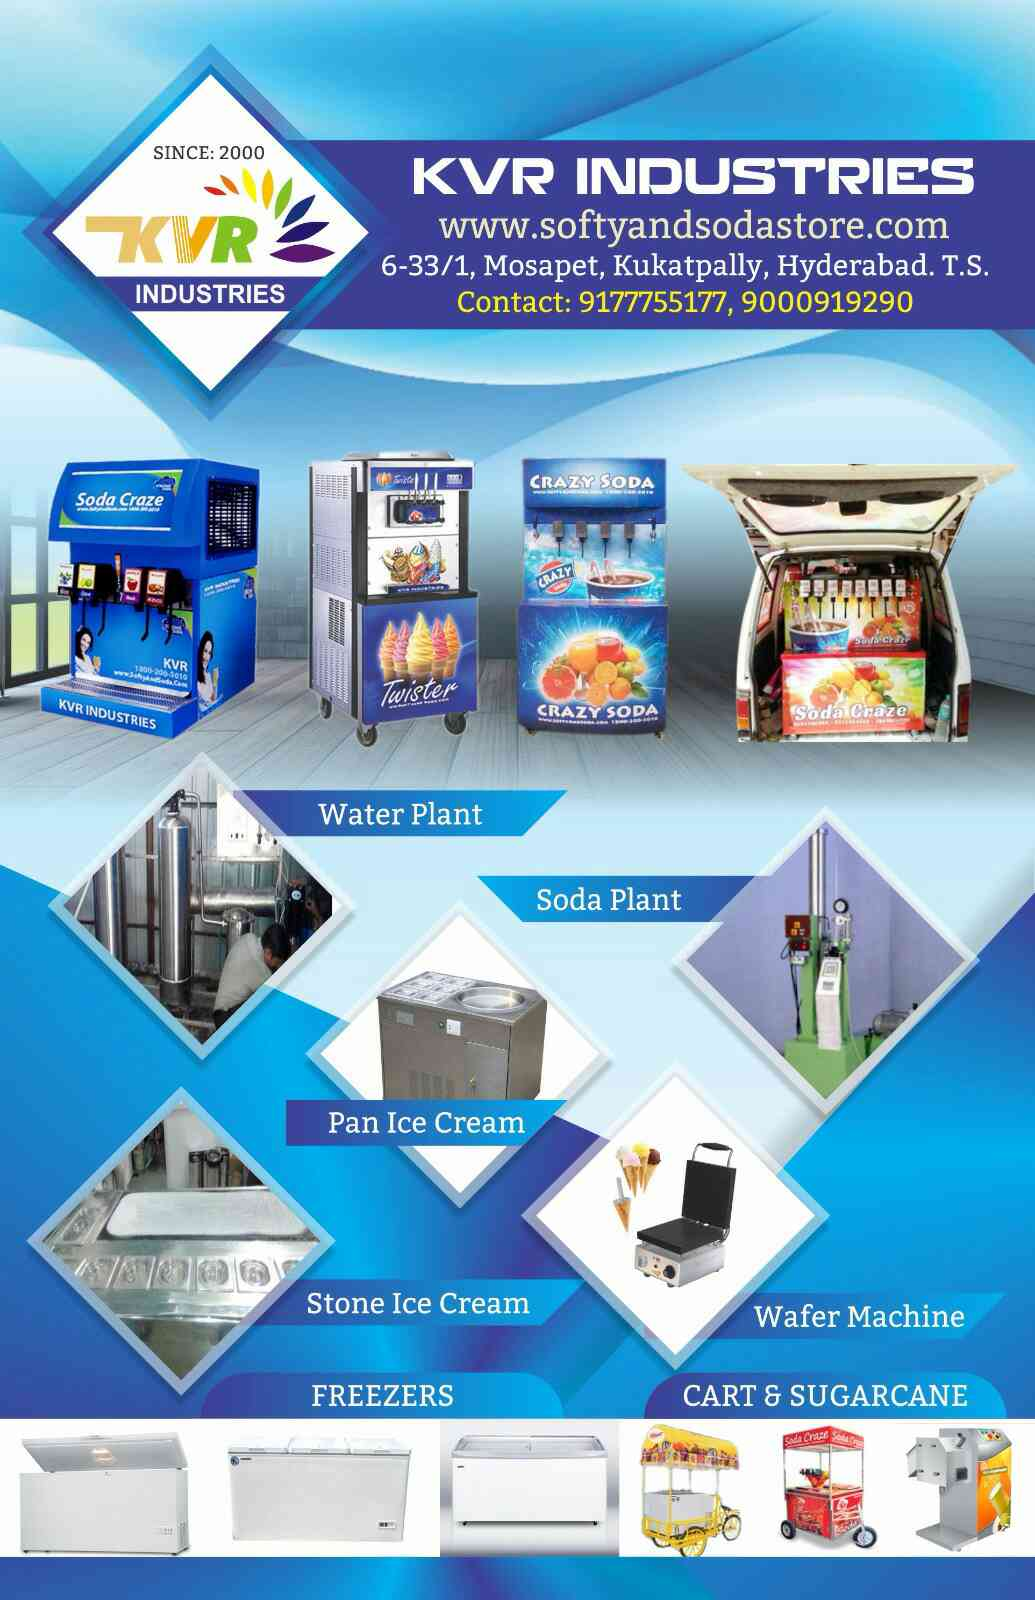 We are soda and Softy ice cream machine manufacturers from kvr